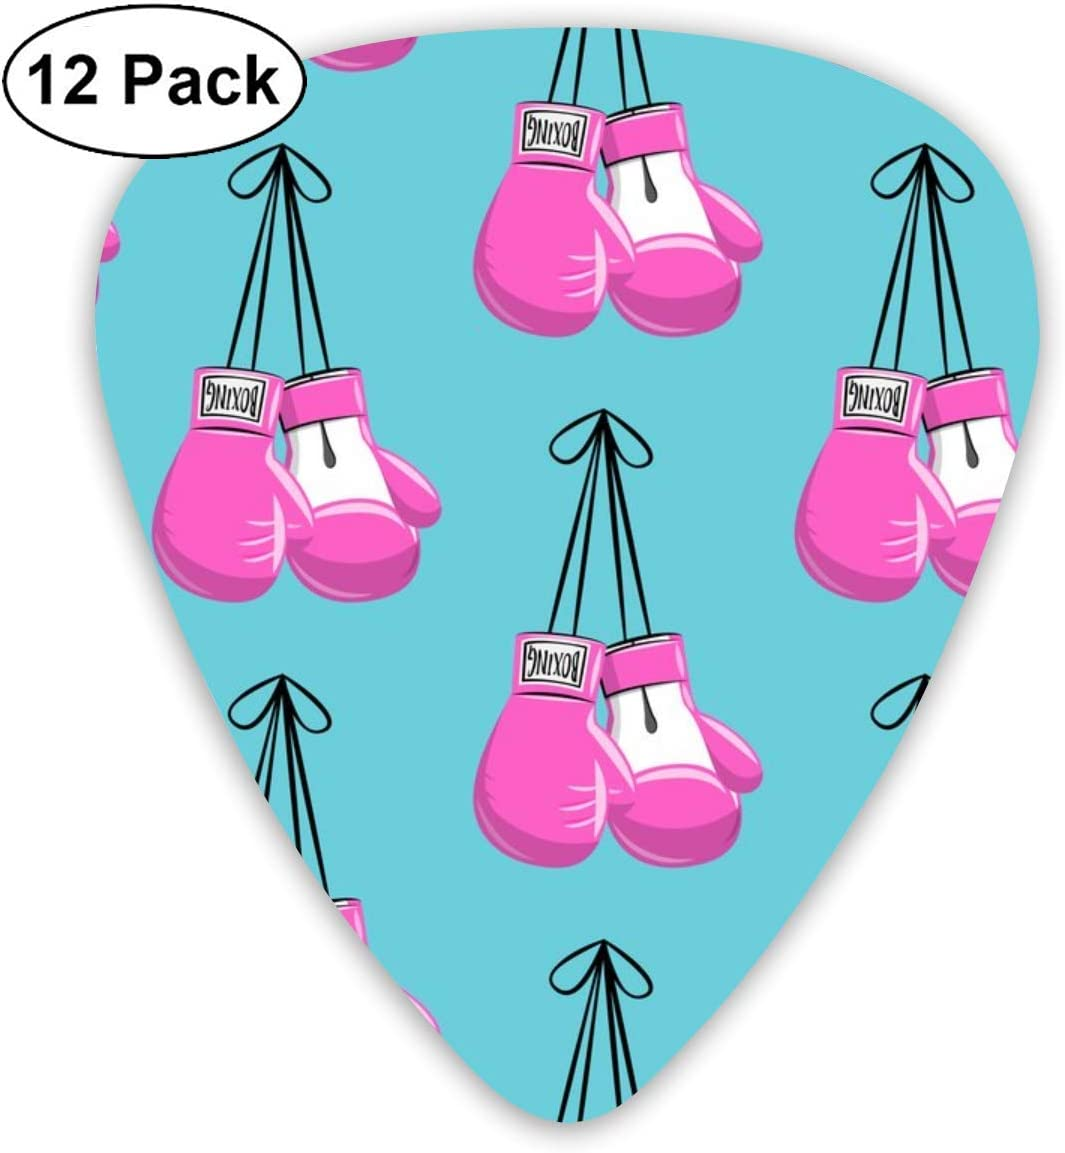 Boxing Gloves On String - Pink On Blue - LAD19_941 Classic Celluloid Picks, 12-Pack, For Electric Guitar, Acoustic Guitar, Mandolin, And Bass: Amazon.es: Instrumentos musicales